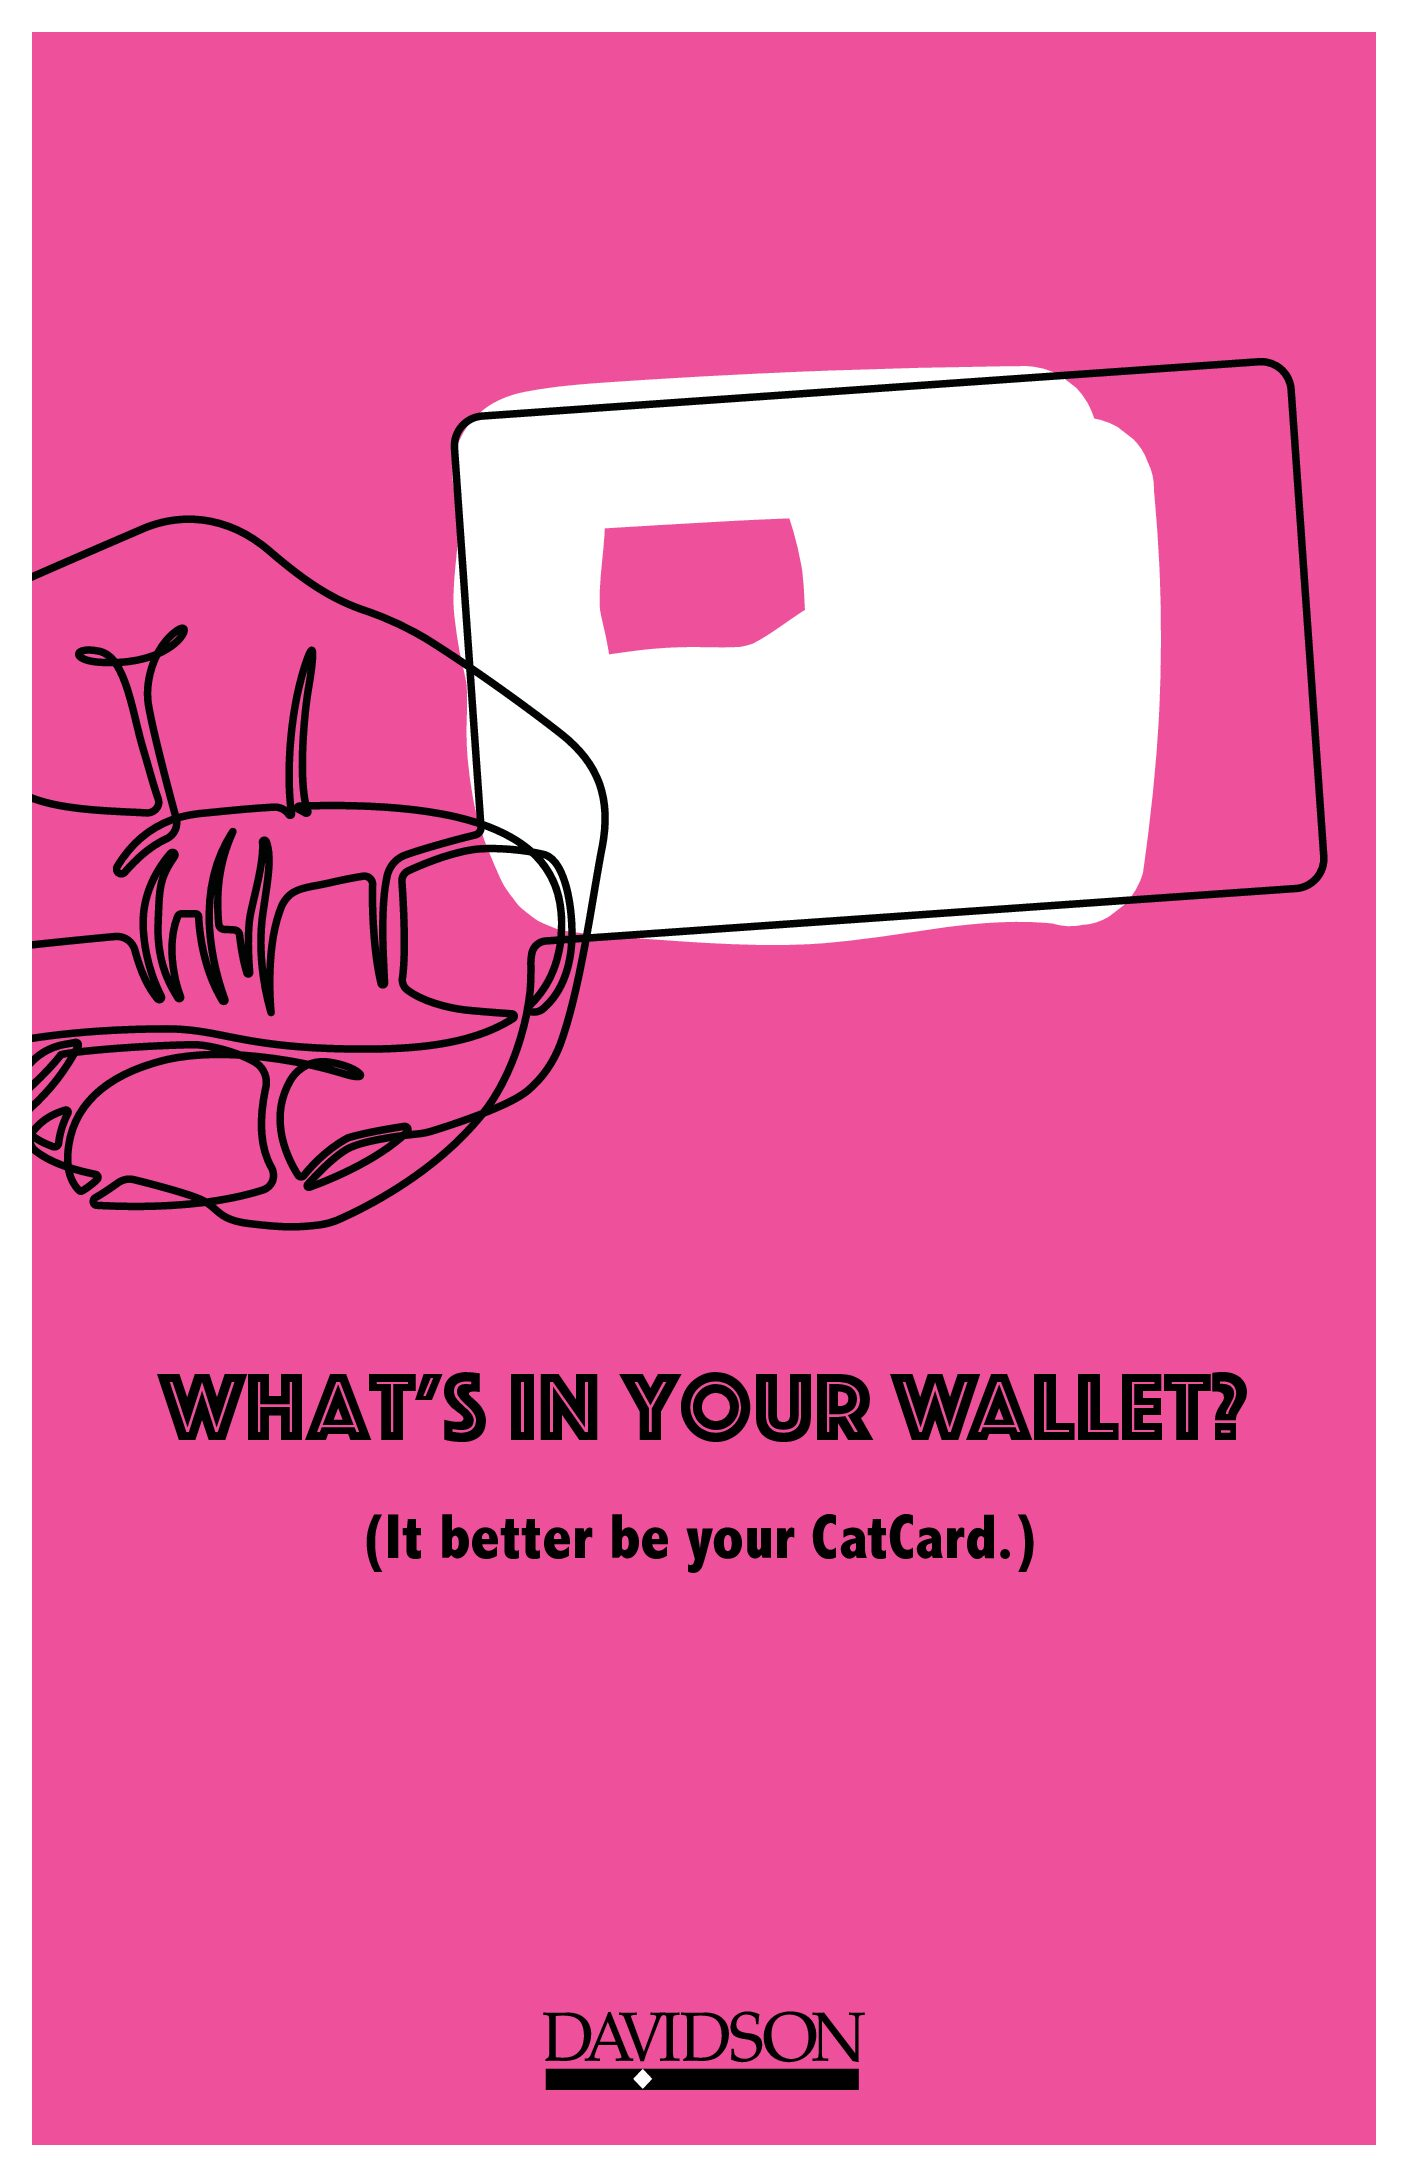 """""""What's in your wallet? It better be your CatCard."""" with sketch of hand holding a card 11x17"""